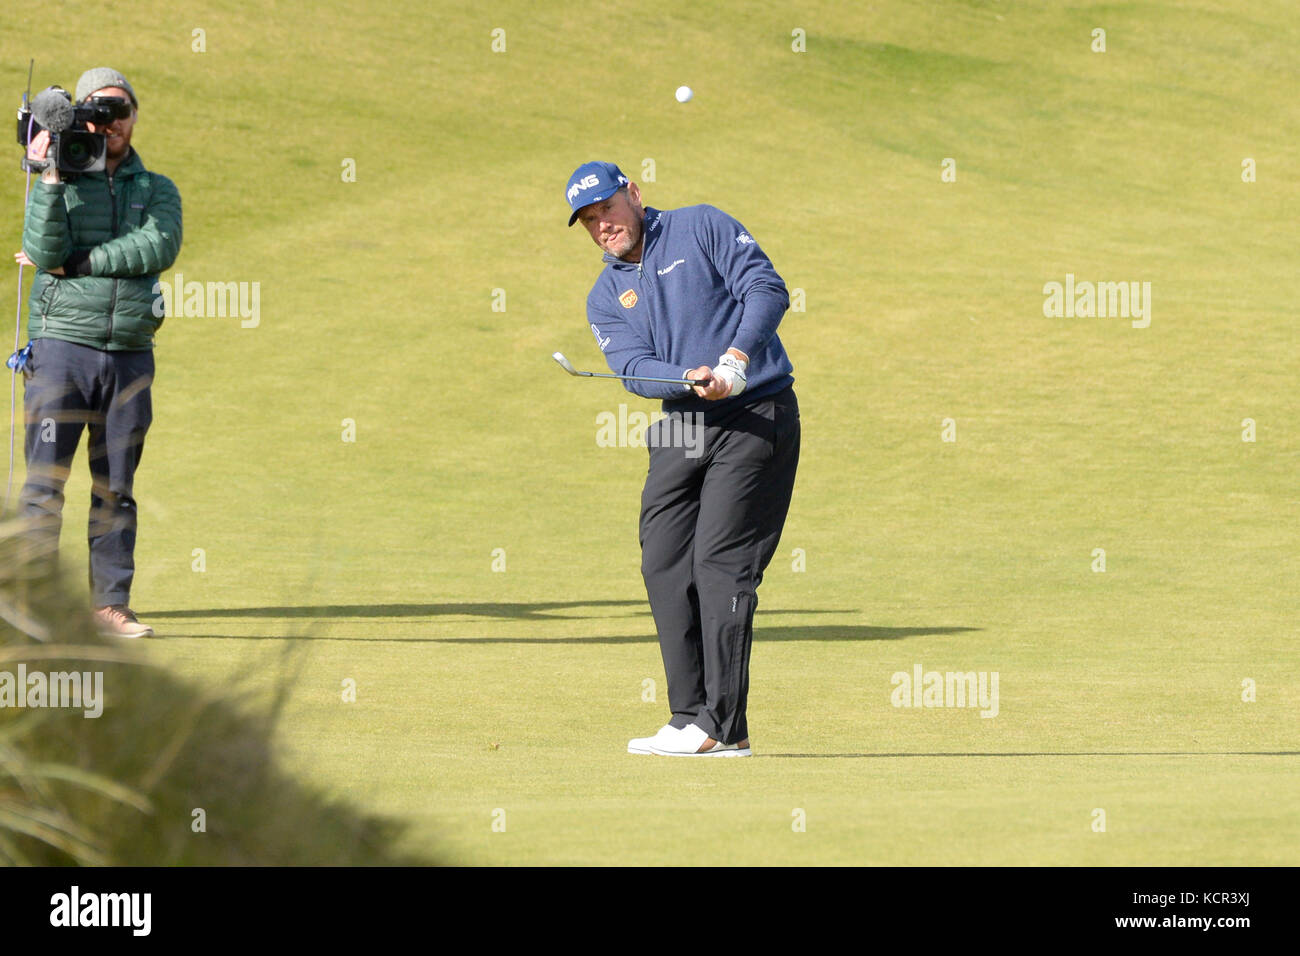 St Andrews, Scotland, United Kingdom. 07th Oct, 2017. Lee Westwood plays an approach shot on the Kingsbarns course - Stock Image